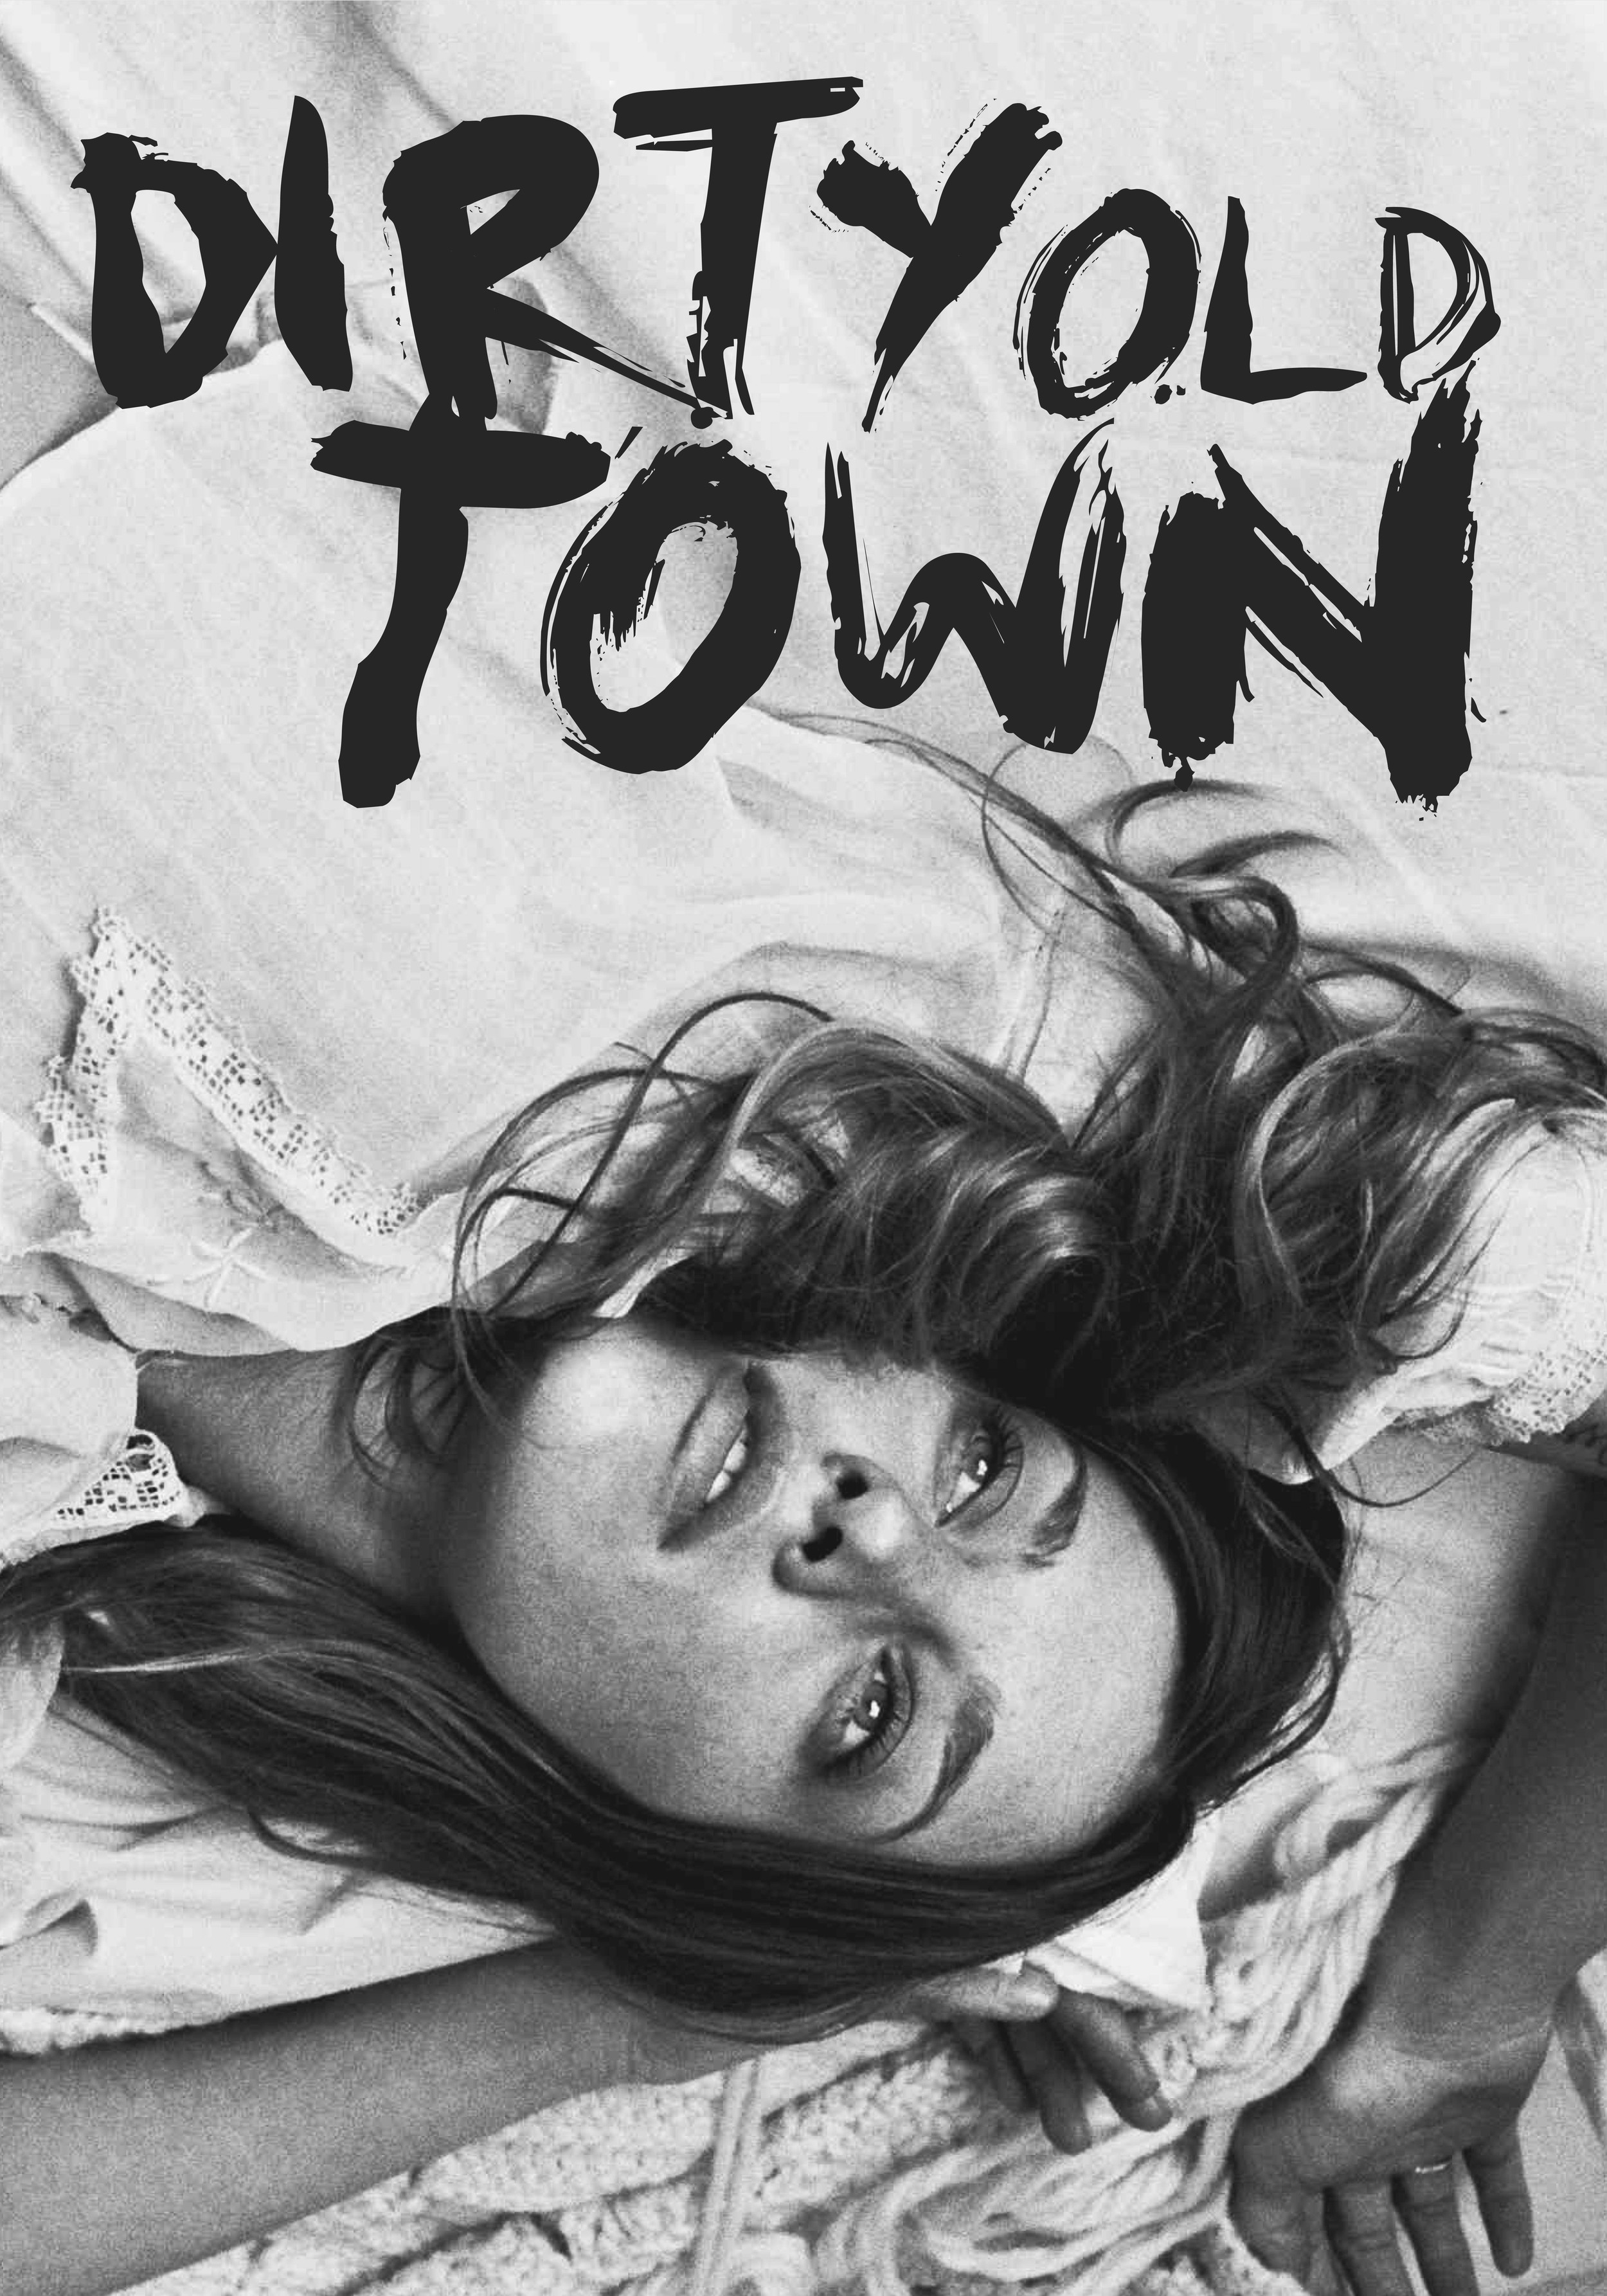 DIRTY OLD TOWN (2010)